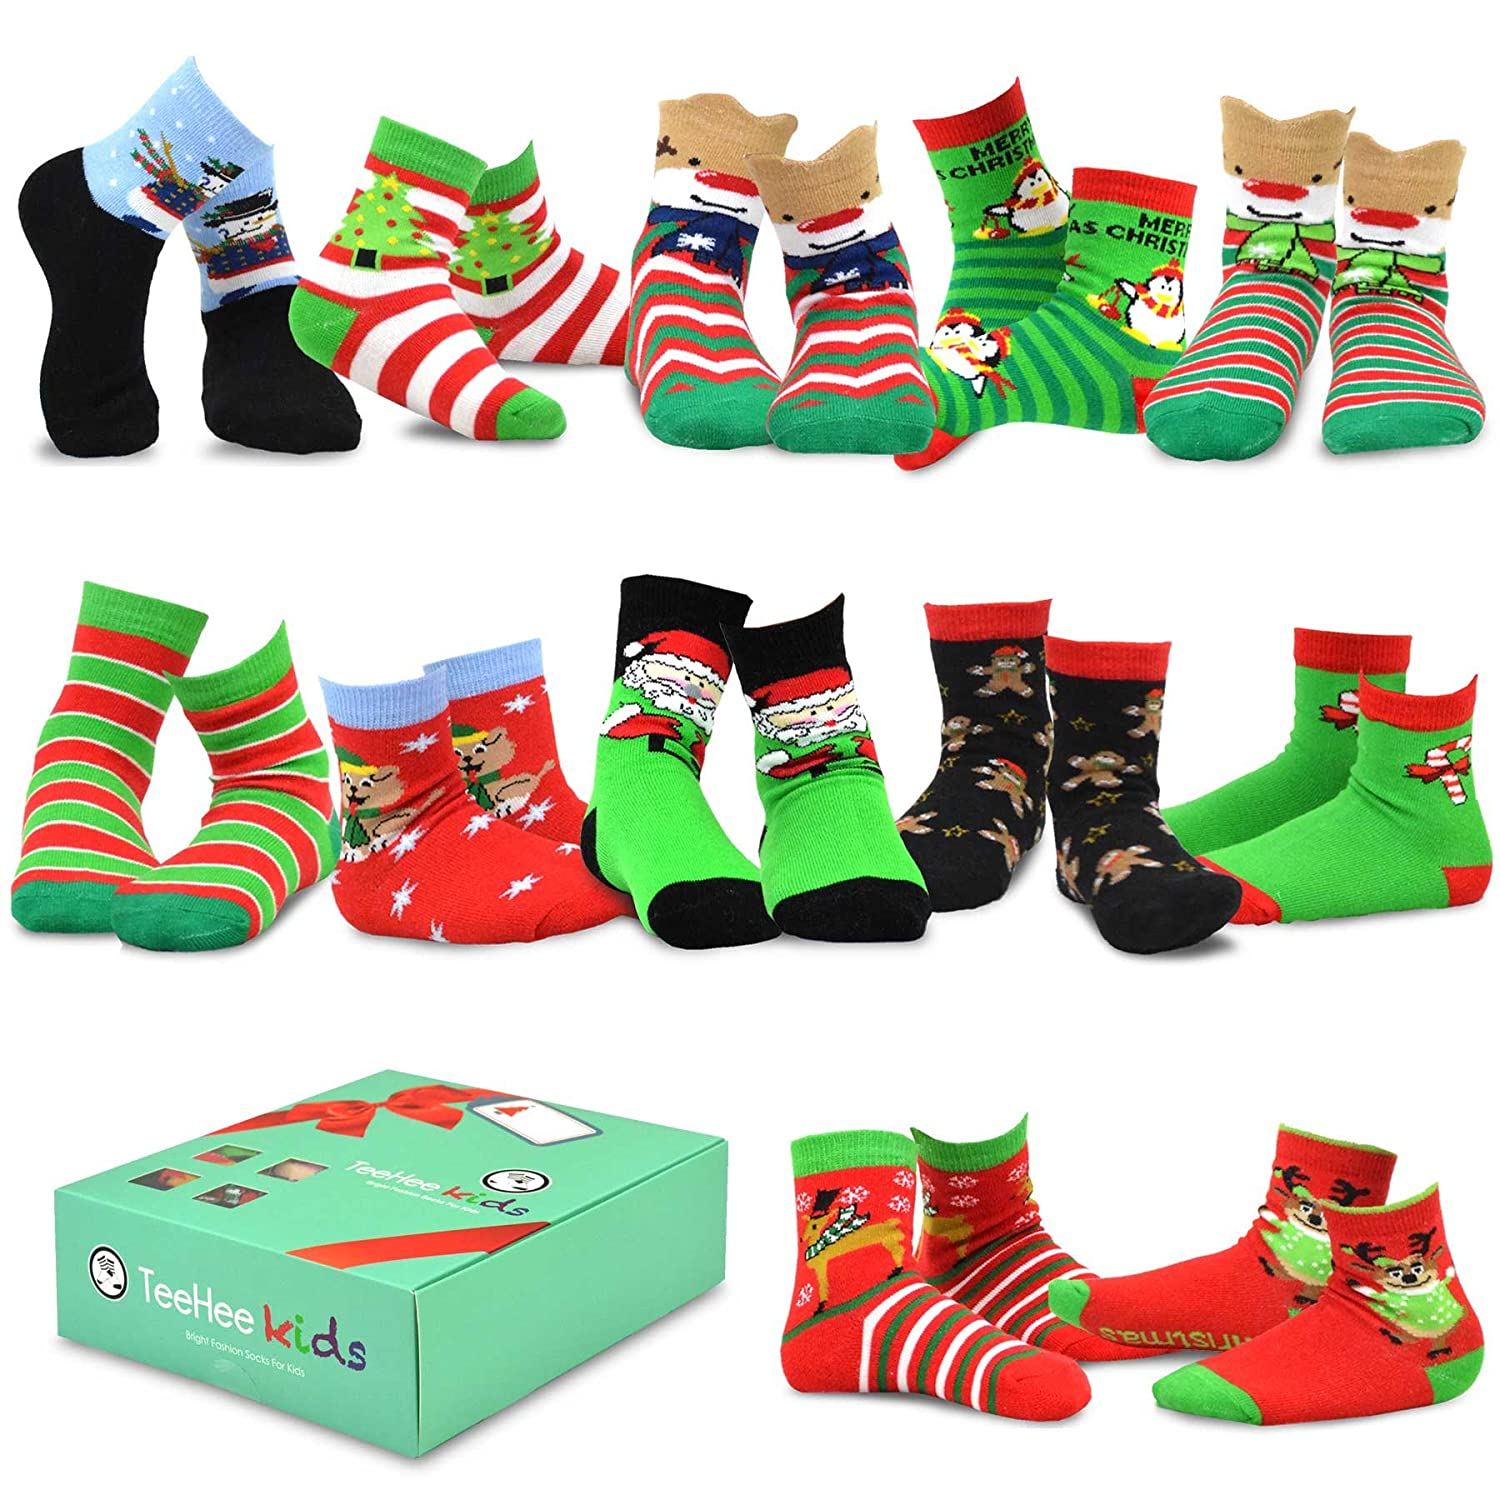 TeeHee Christmas 12-Pack Cotton Socks, Great Value Gift Box for Kids